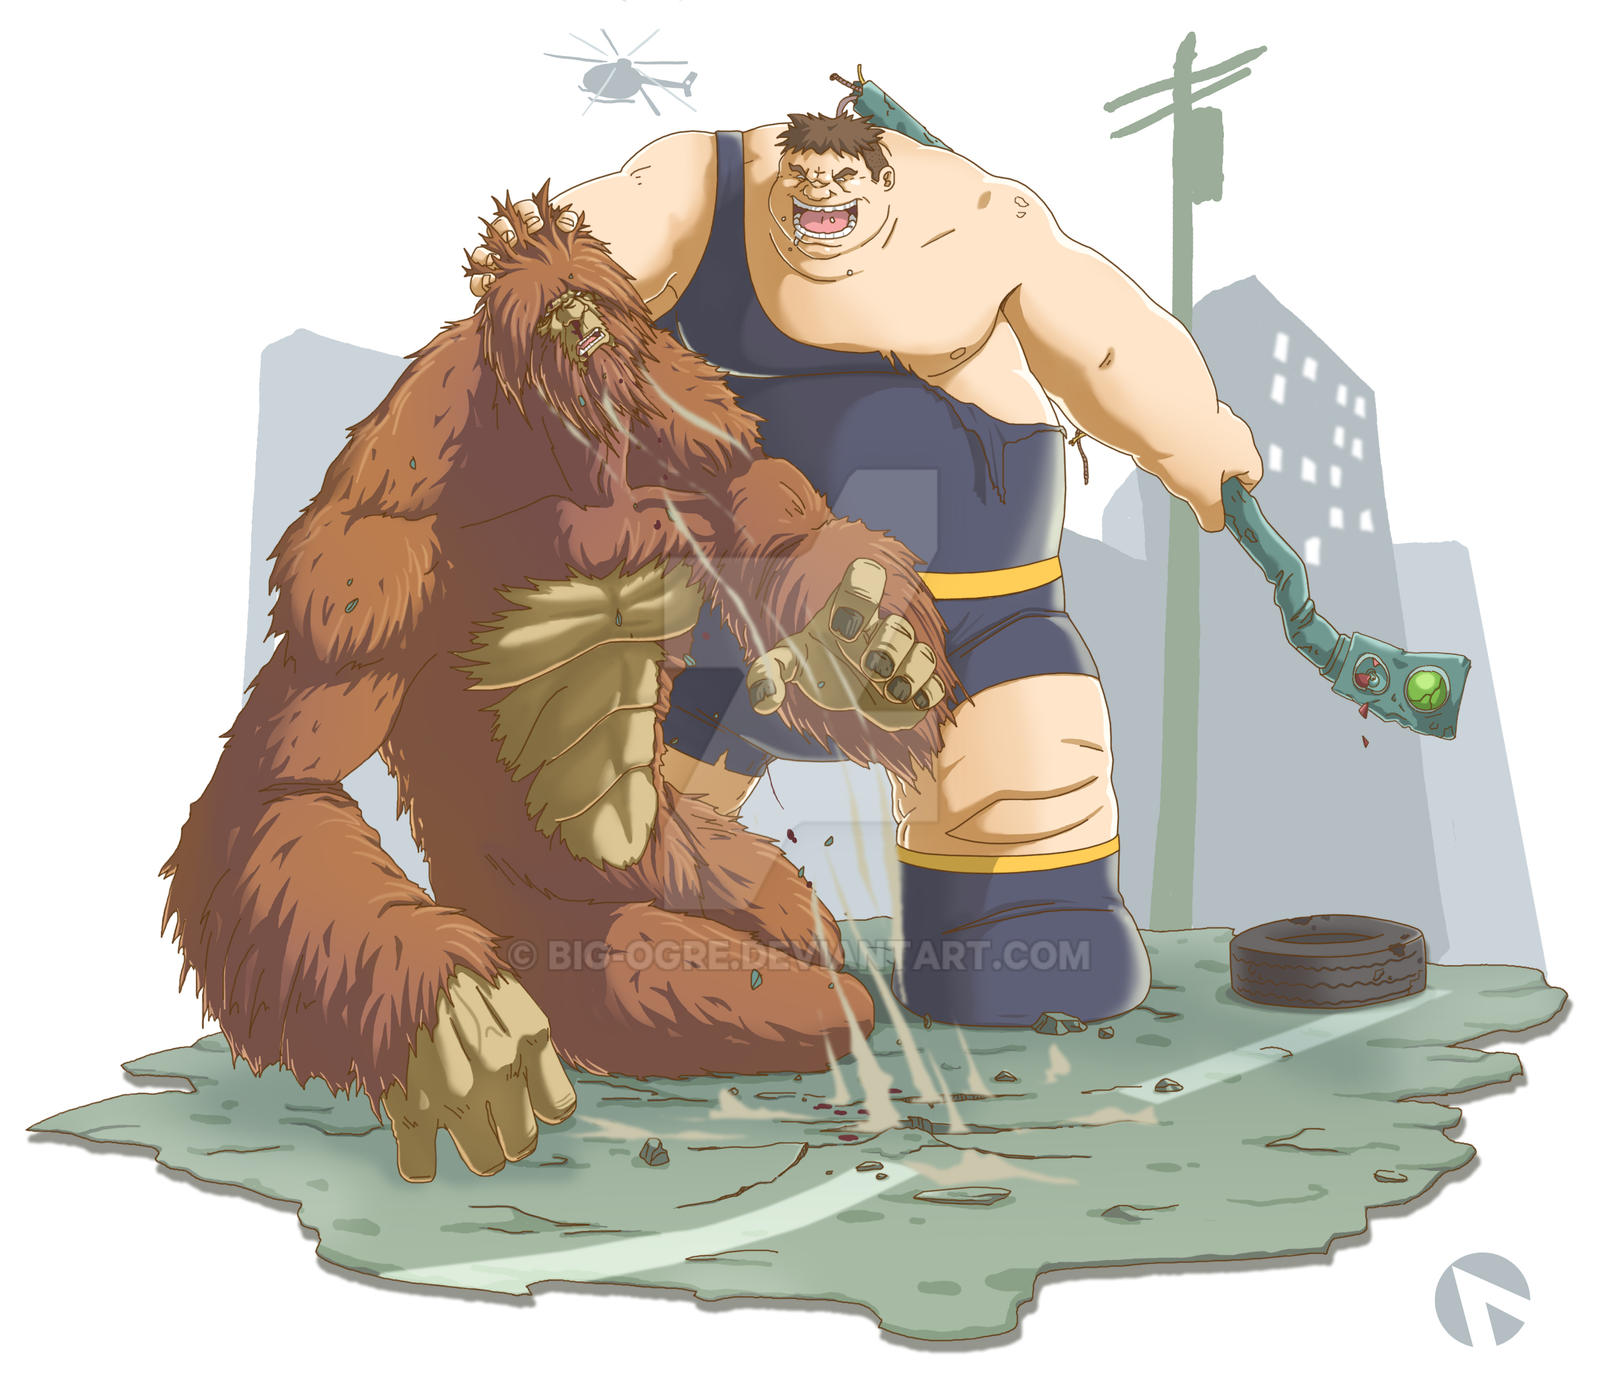 The Blob vs Sasquatch COLORED by Big-Ogre